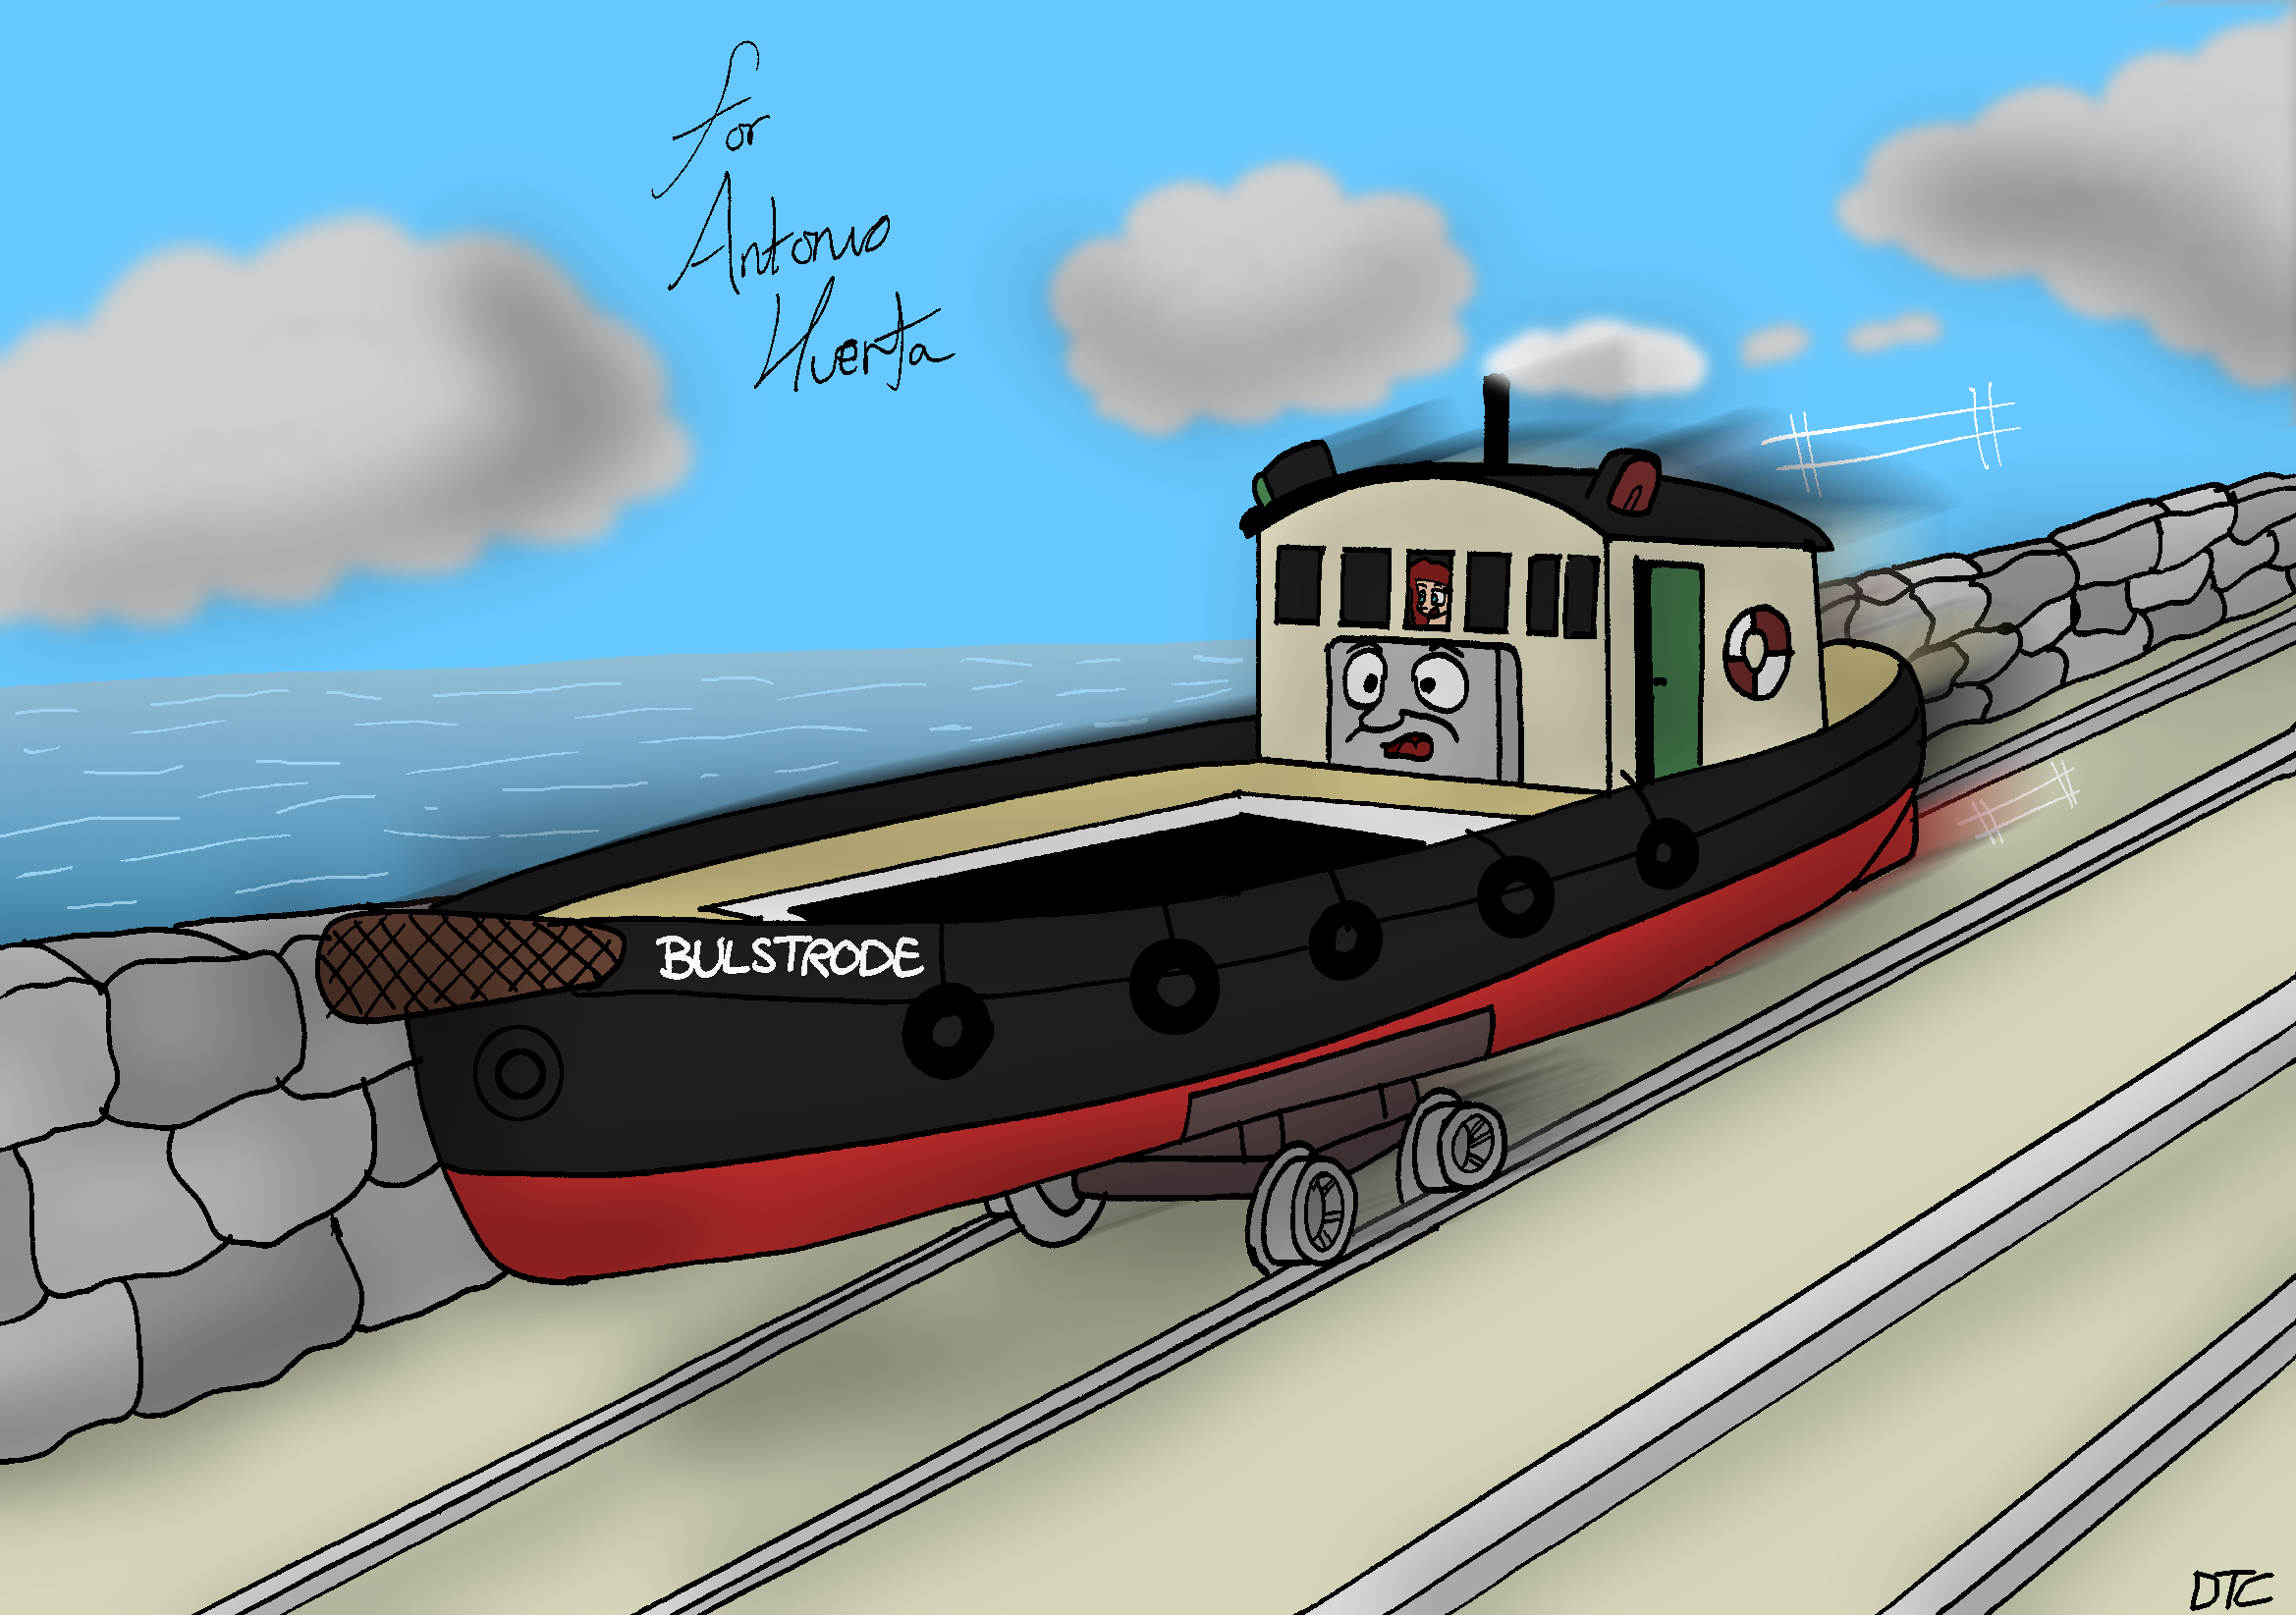 Ariel and Bulstrode the Rail-Barge by AntonioAlexisHuerta on